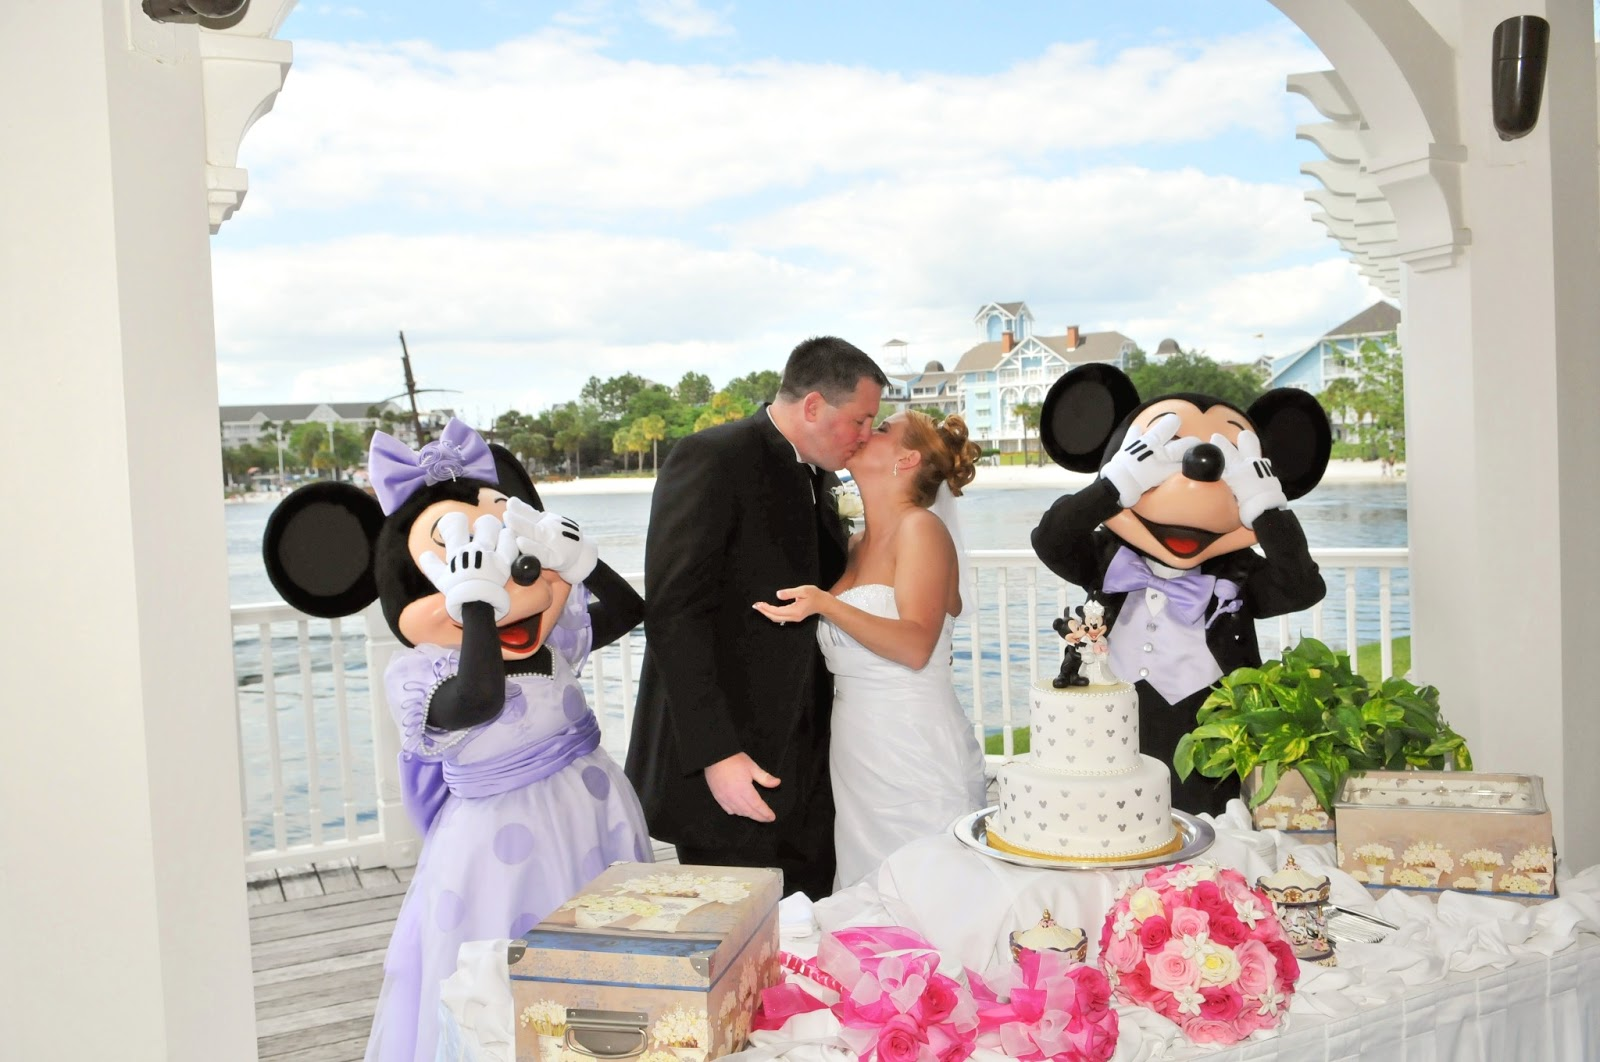 Weddings at disney parks and resorts - Yes You Can Have A Wedding At Disney For Under 10 000